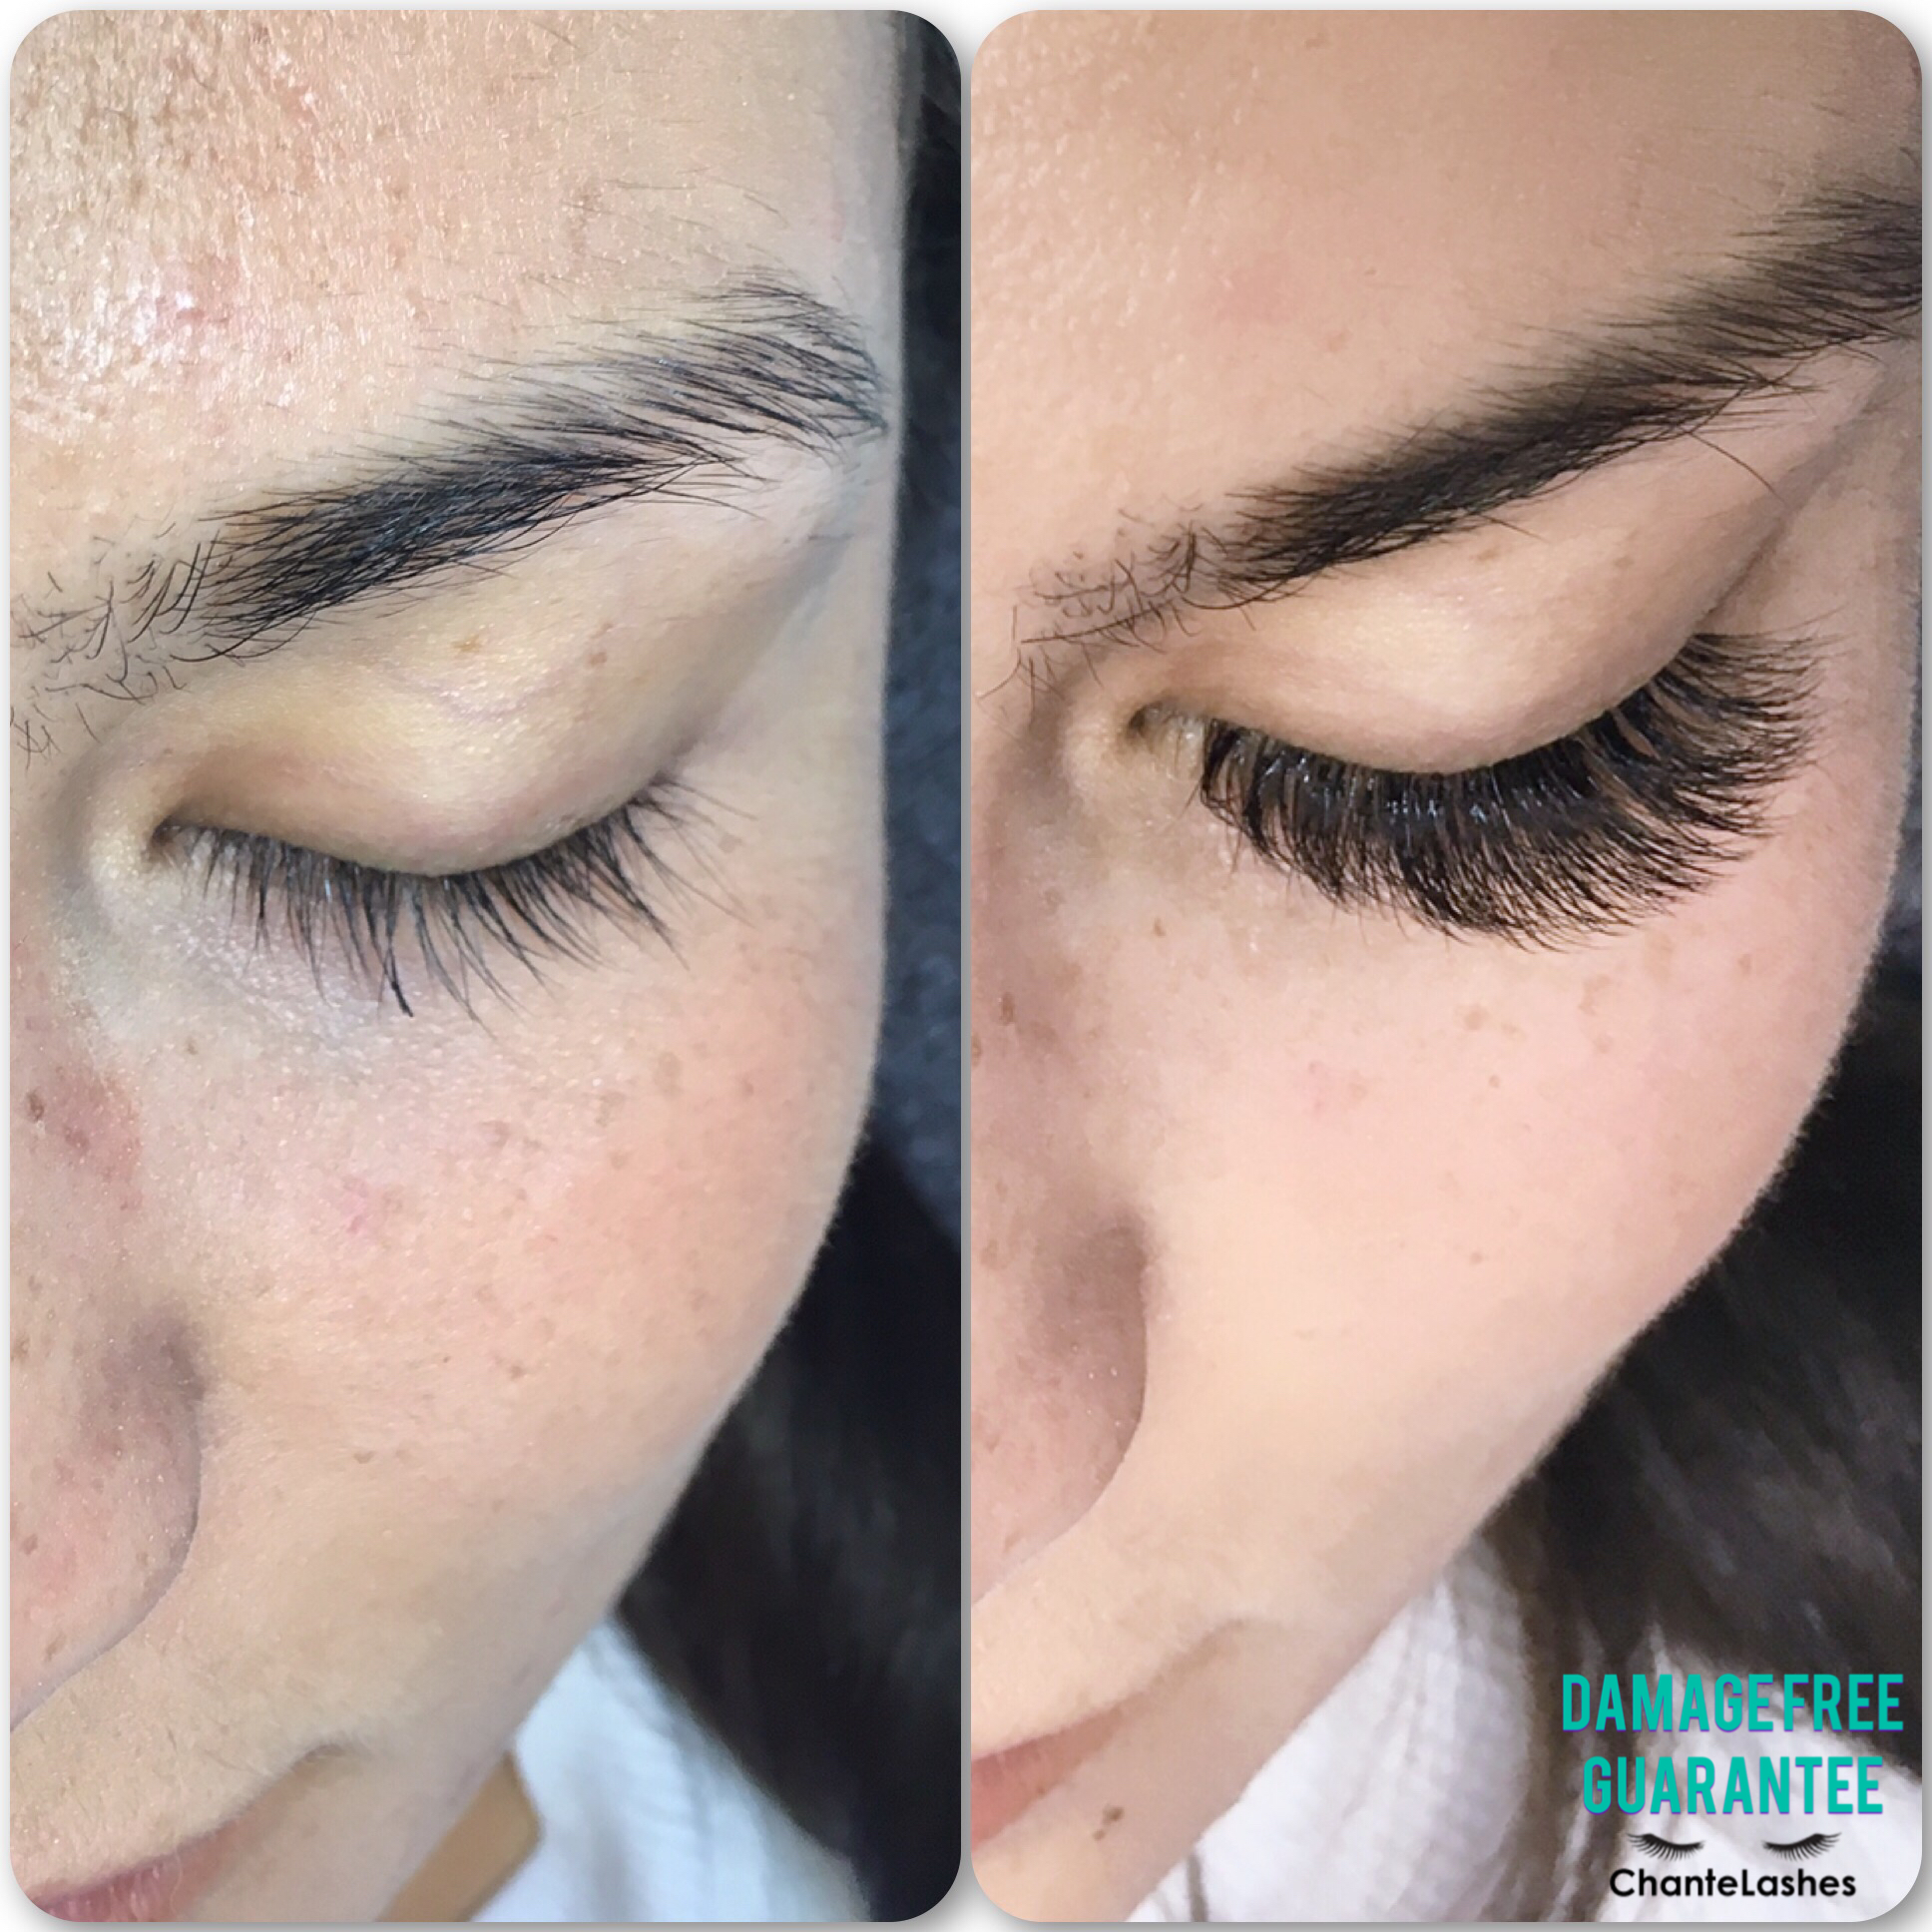 947dddca0a0 Volume lashing, is an advanced technique in which handmade fans consisting  of soft, light-weight lashes, are placed on each natural lash.